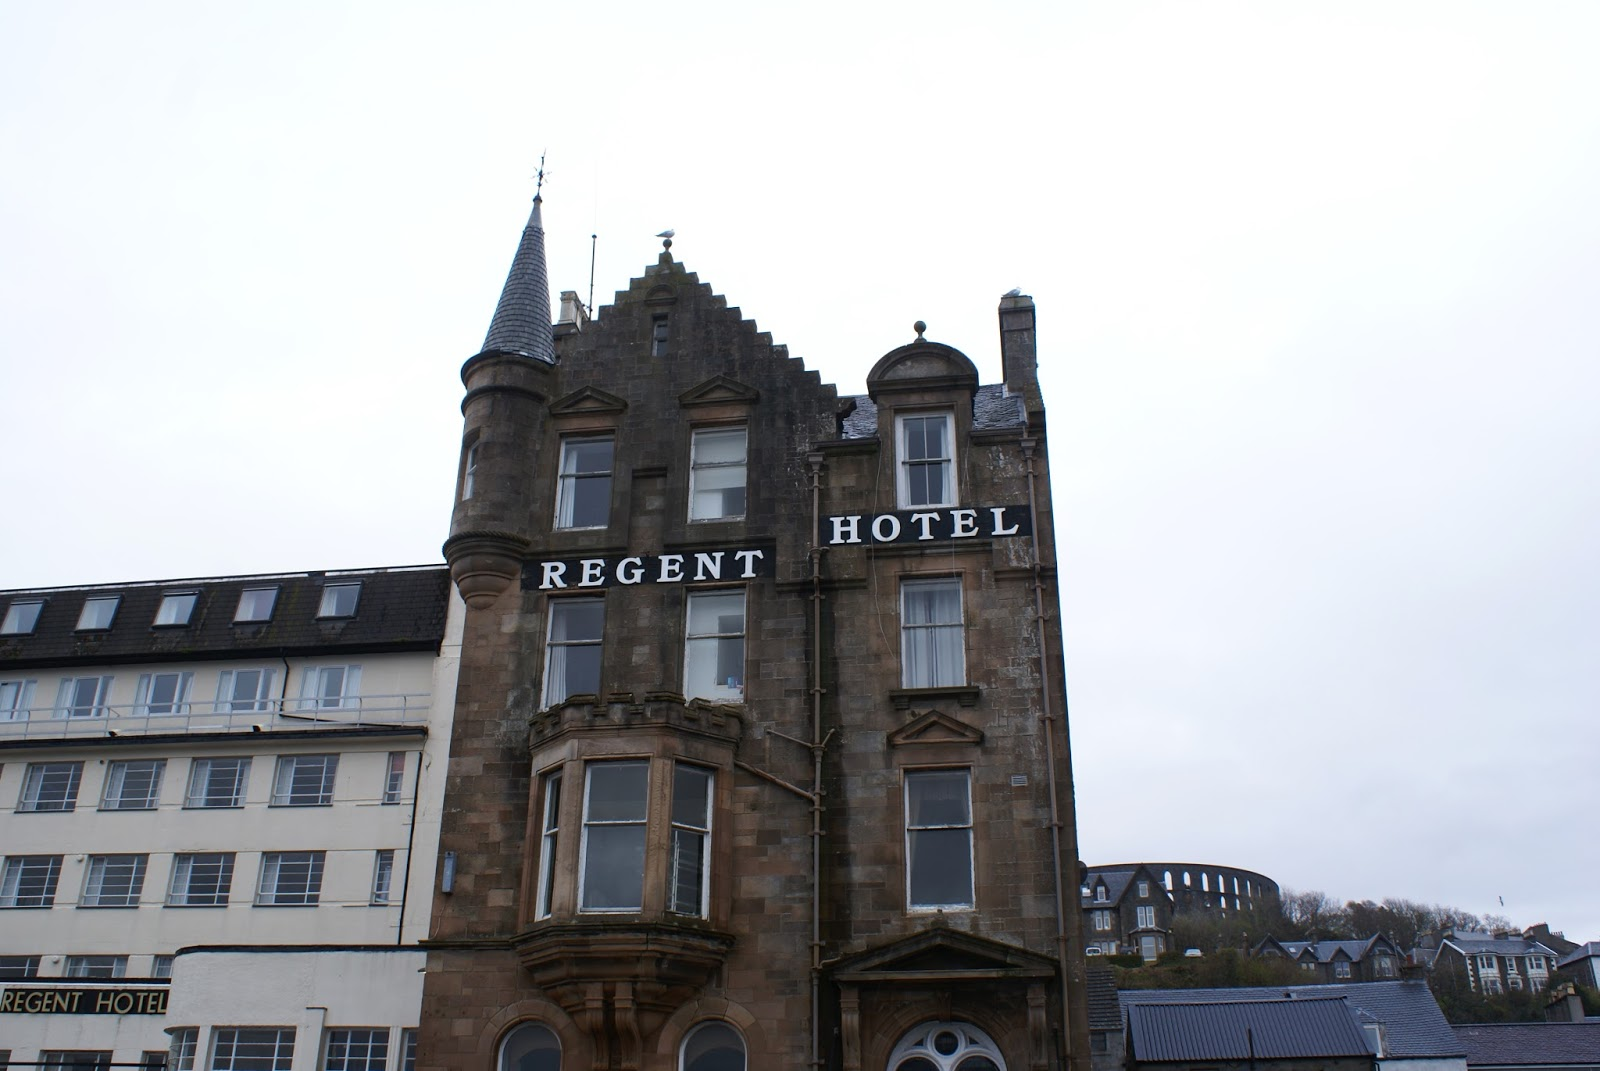 regent hotel oban argyll highlands scotland uk great britain camomille blend